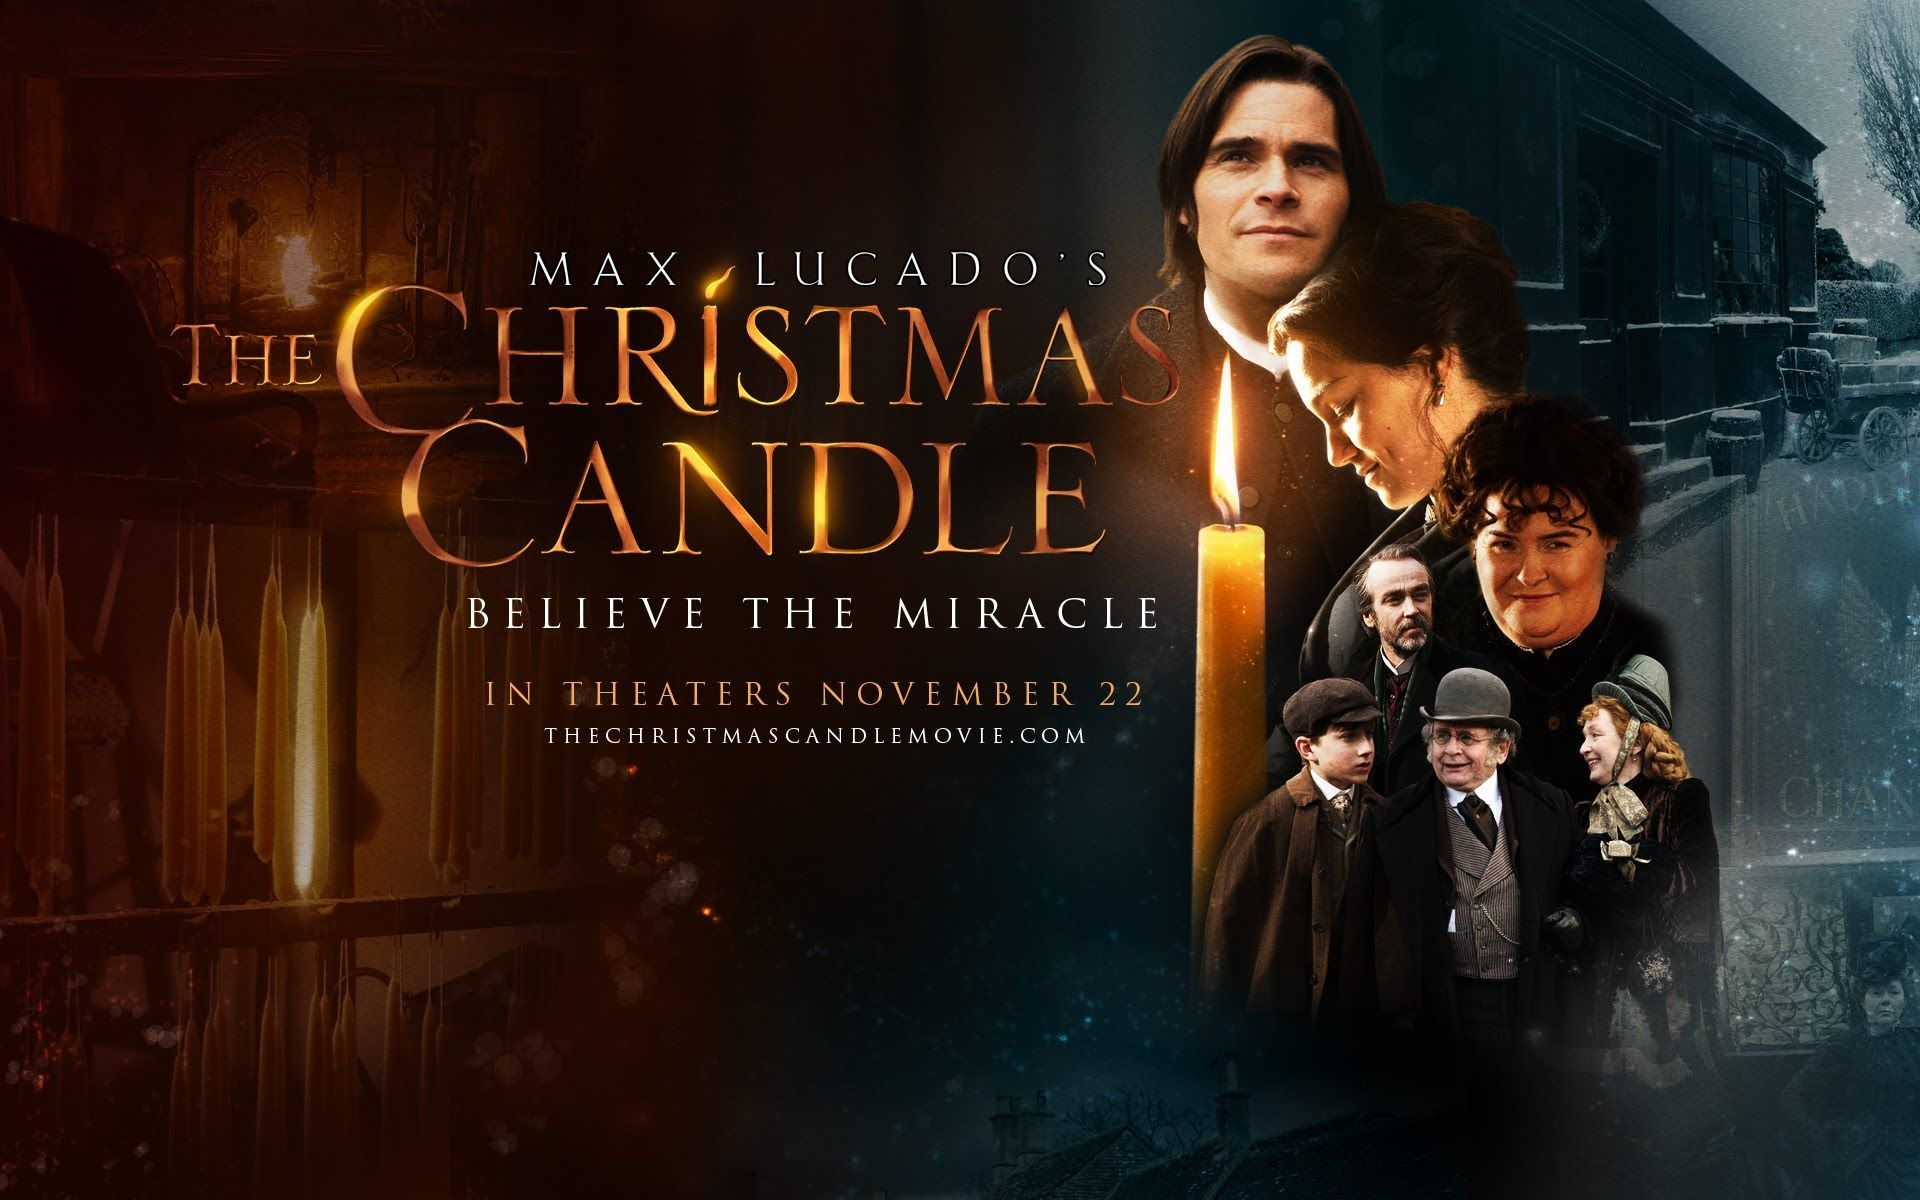 The Christmas Candle In Theaters Nov 22 Official Hd Movie Trailer Now I Must Read The Book Christmas Candle Christian Christmas Music Christian Movies